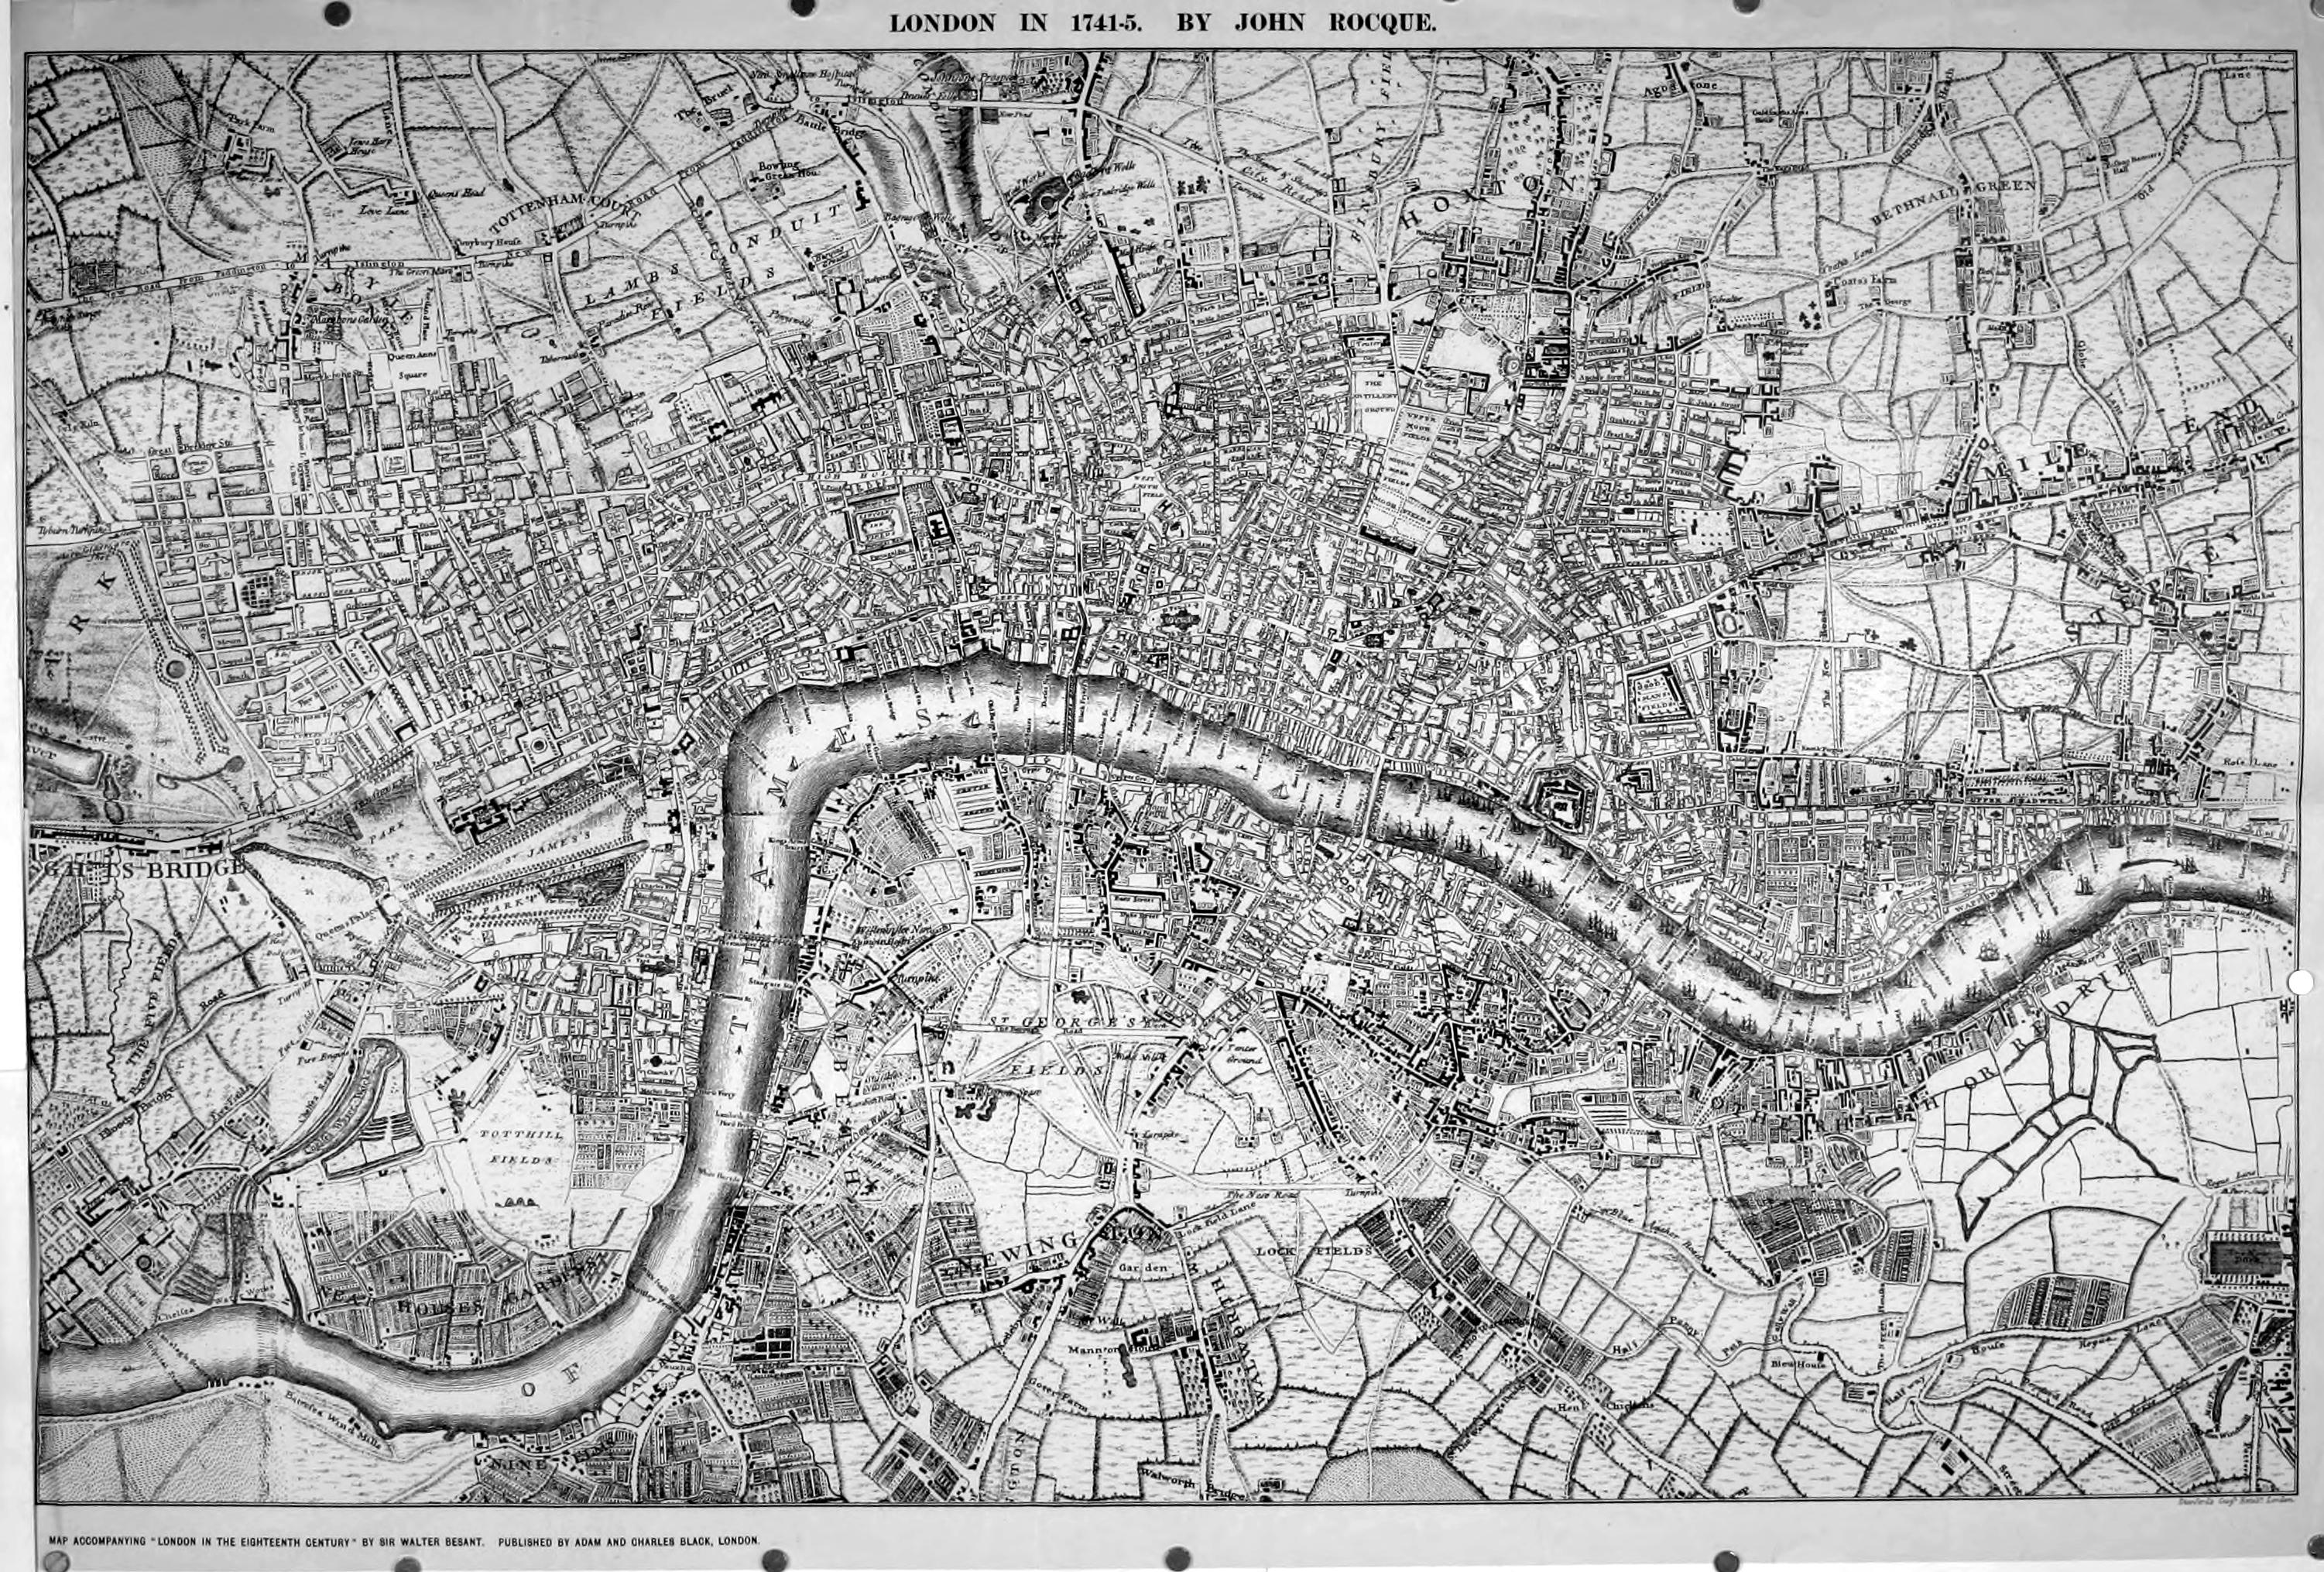 Maps of old london end of the project gutenberg ebook of maps of old london by anonymous end of this project gutenberg ebook maps of old london this file should fandeluxe Choice Image